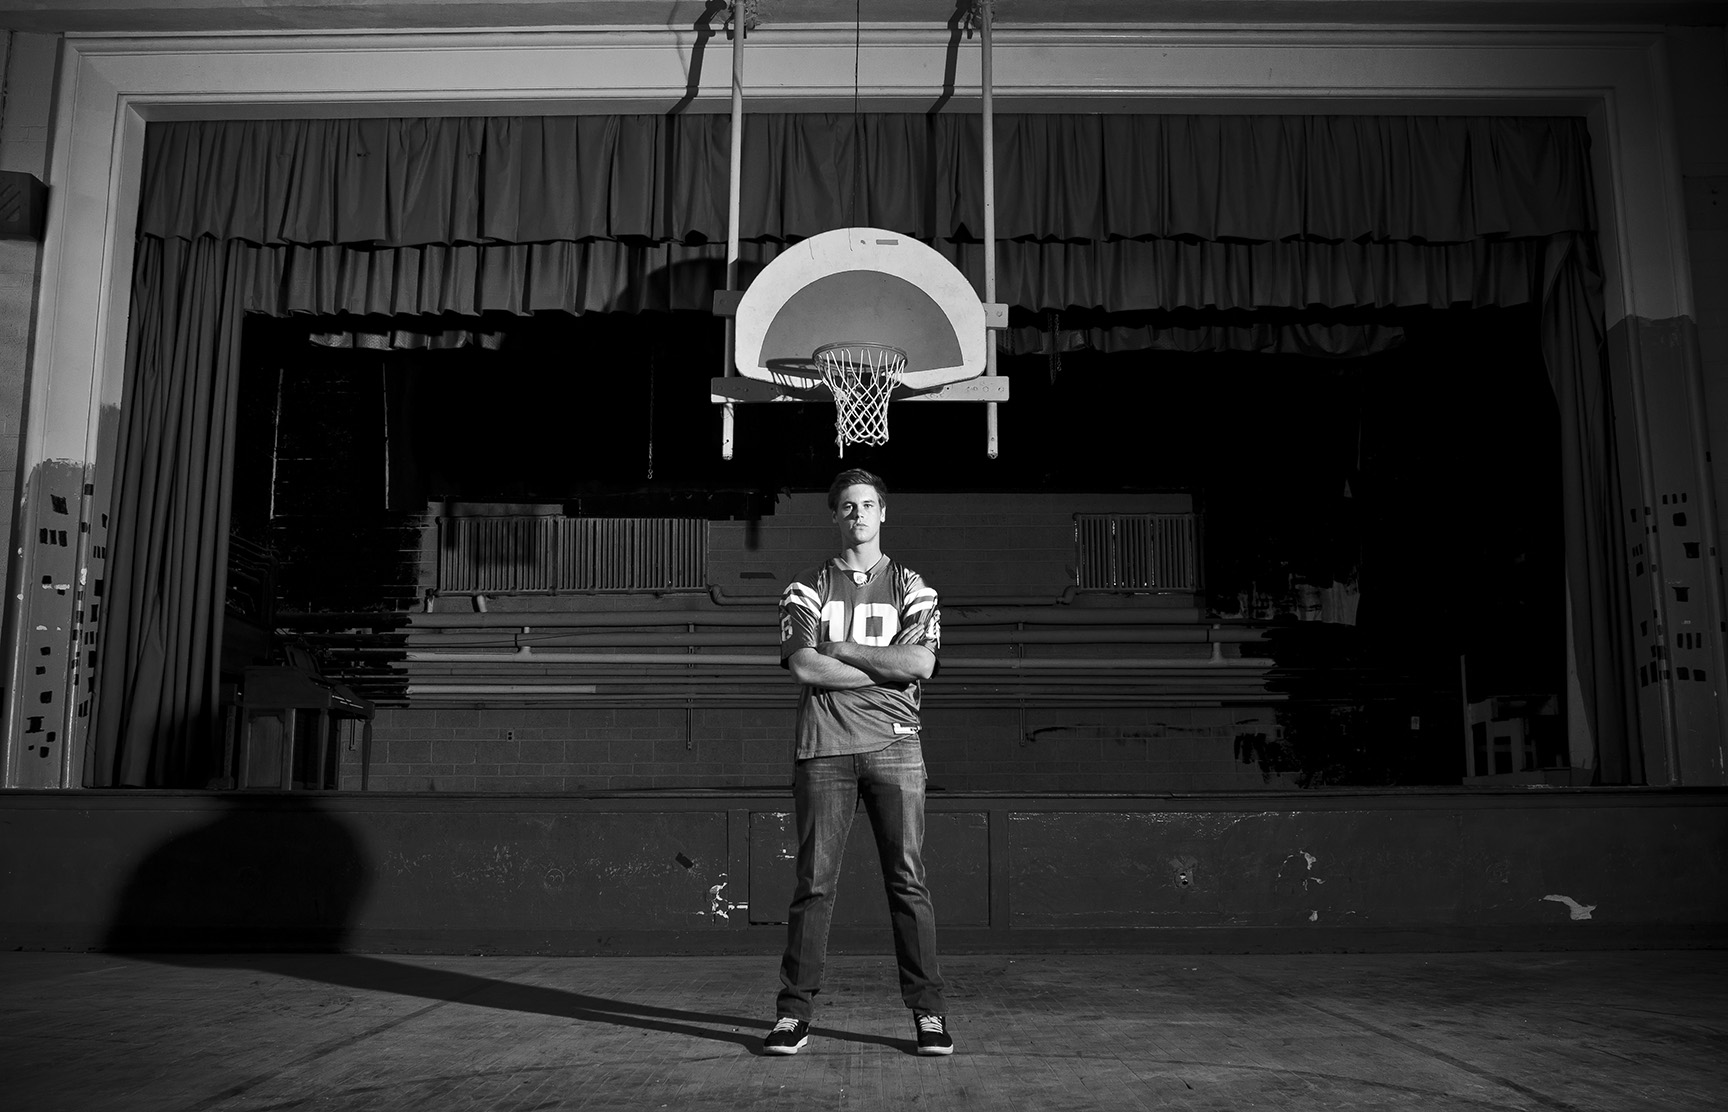 Senior photo in front of basketball hoop in a gym